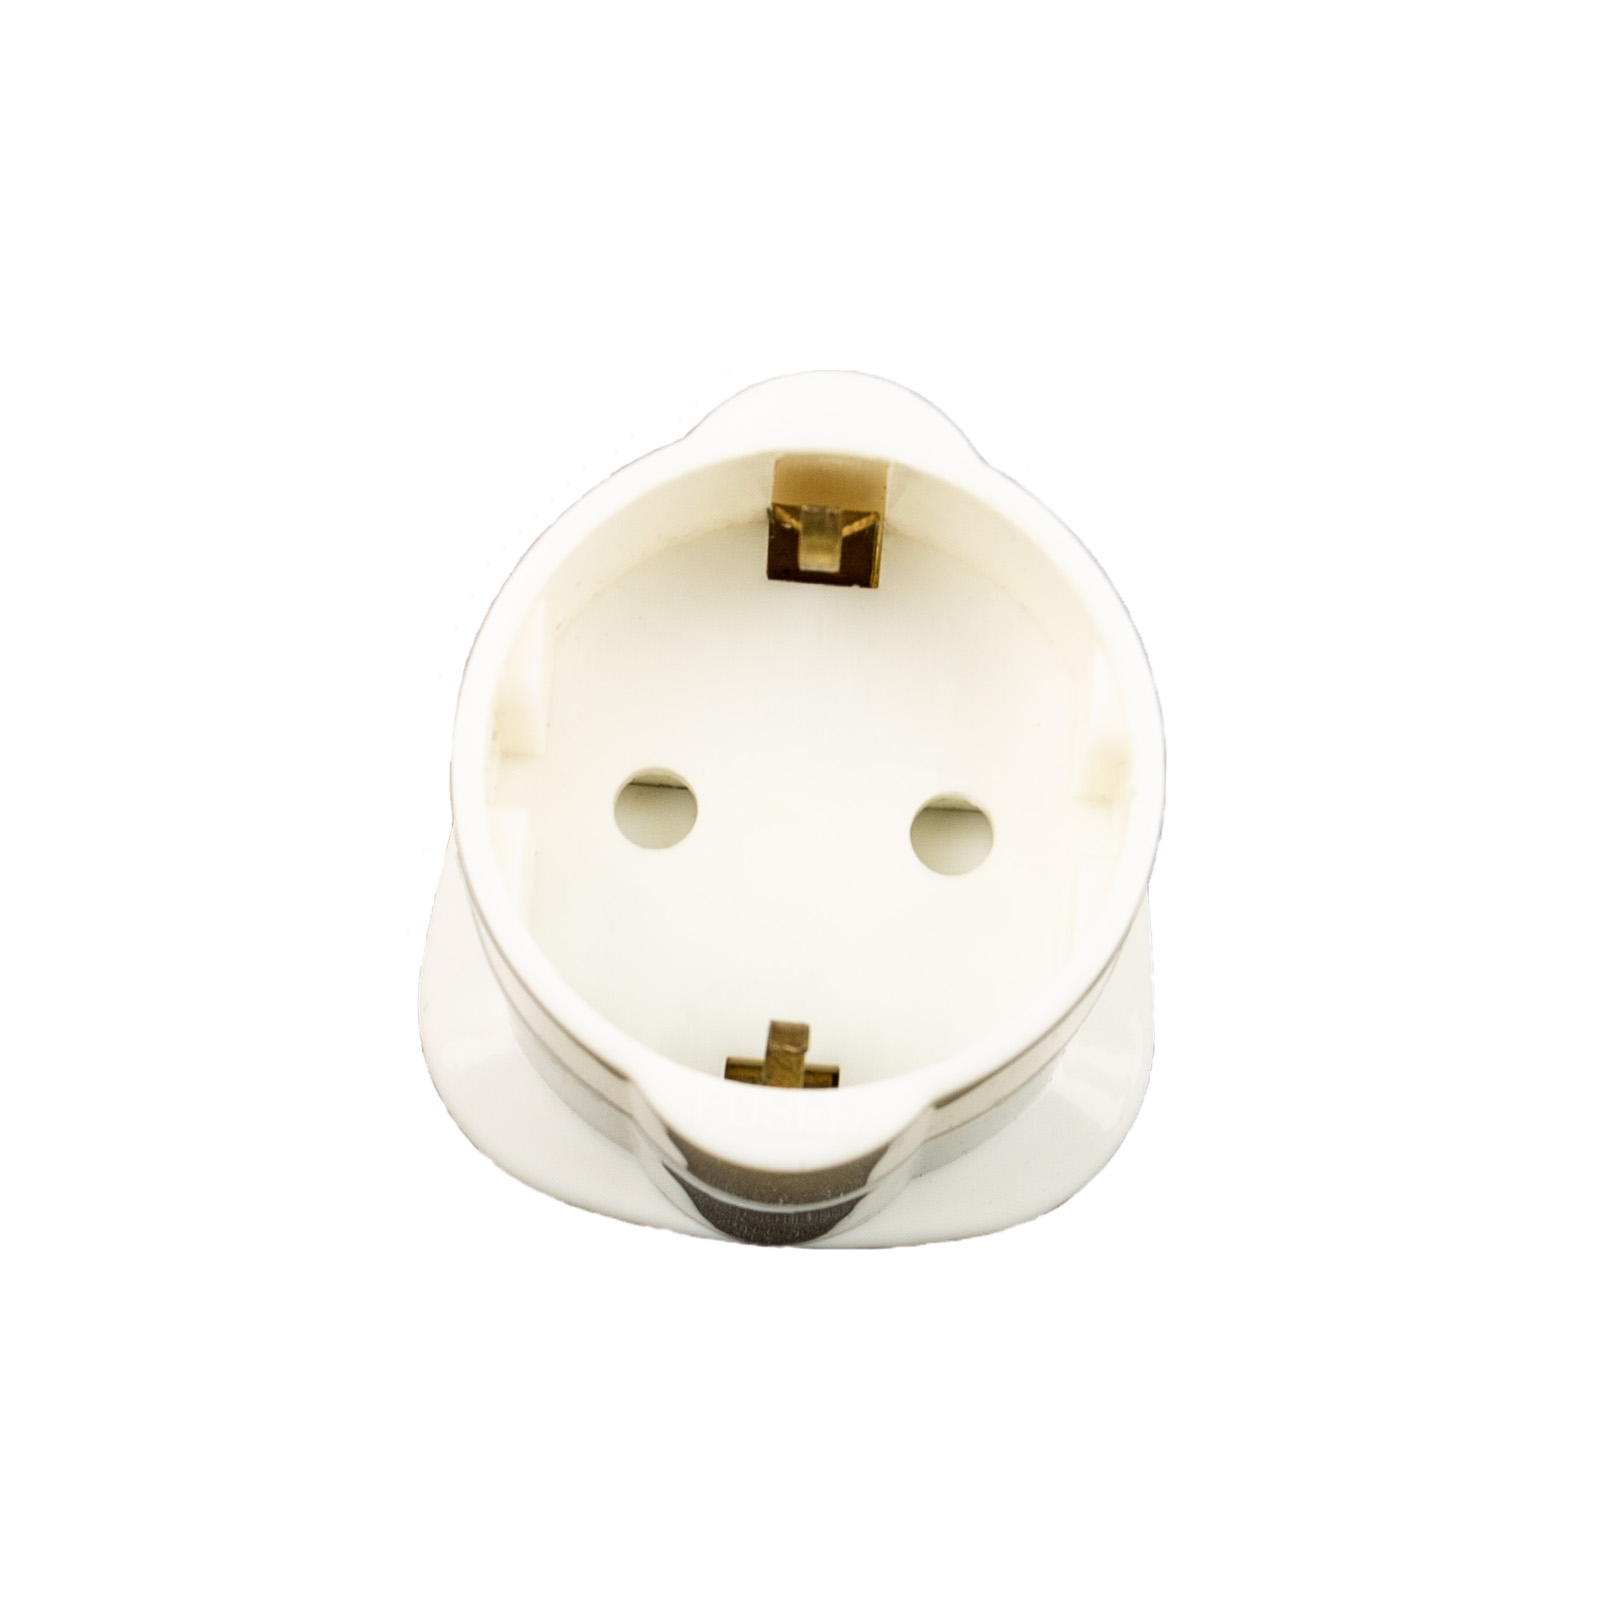 Mains adaptor EU plug to UK socket